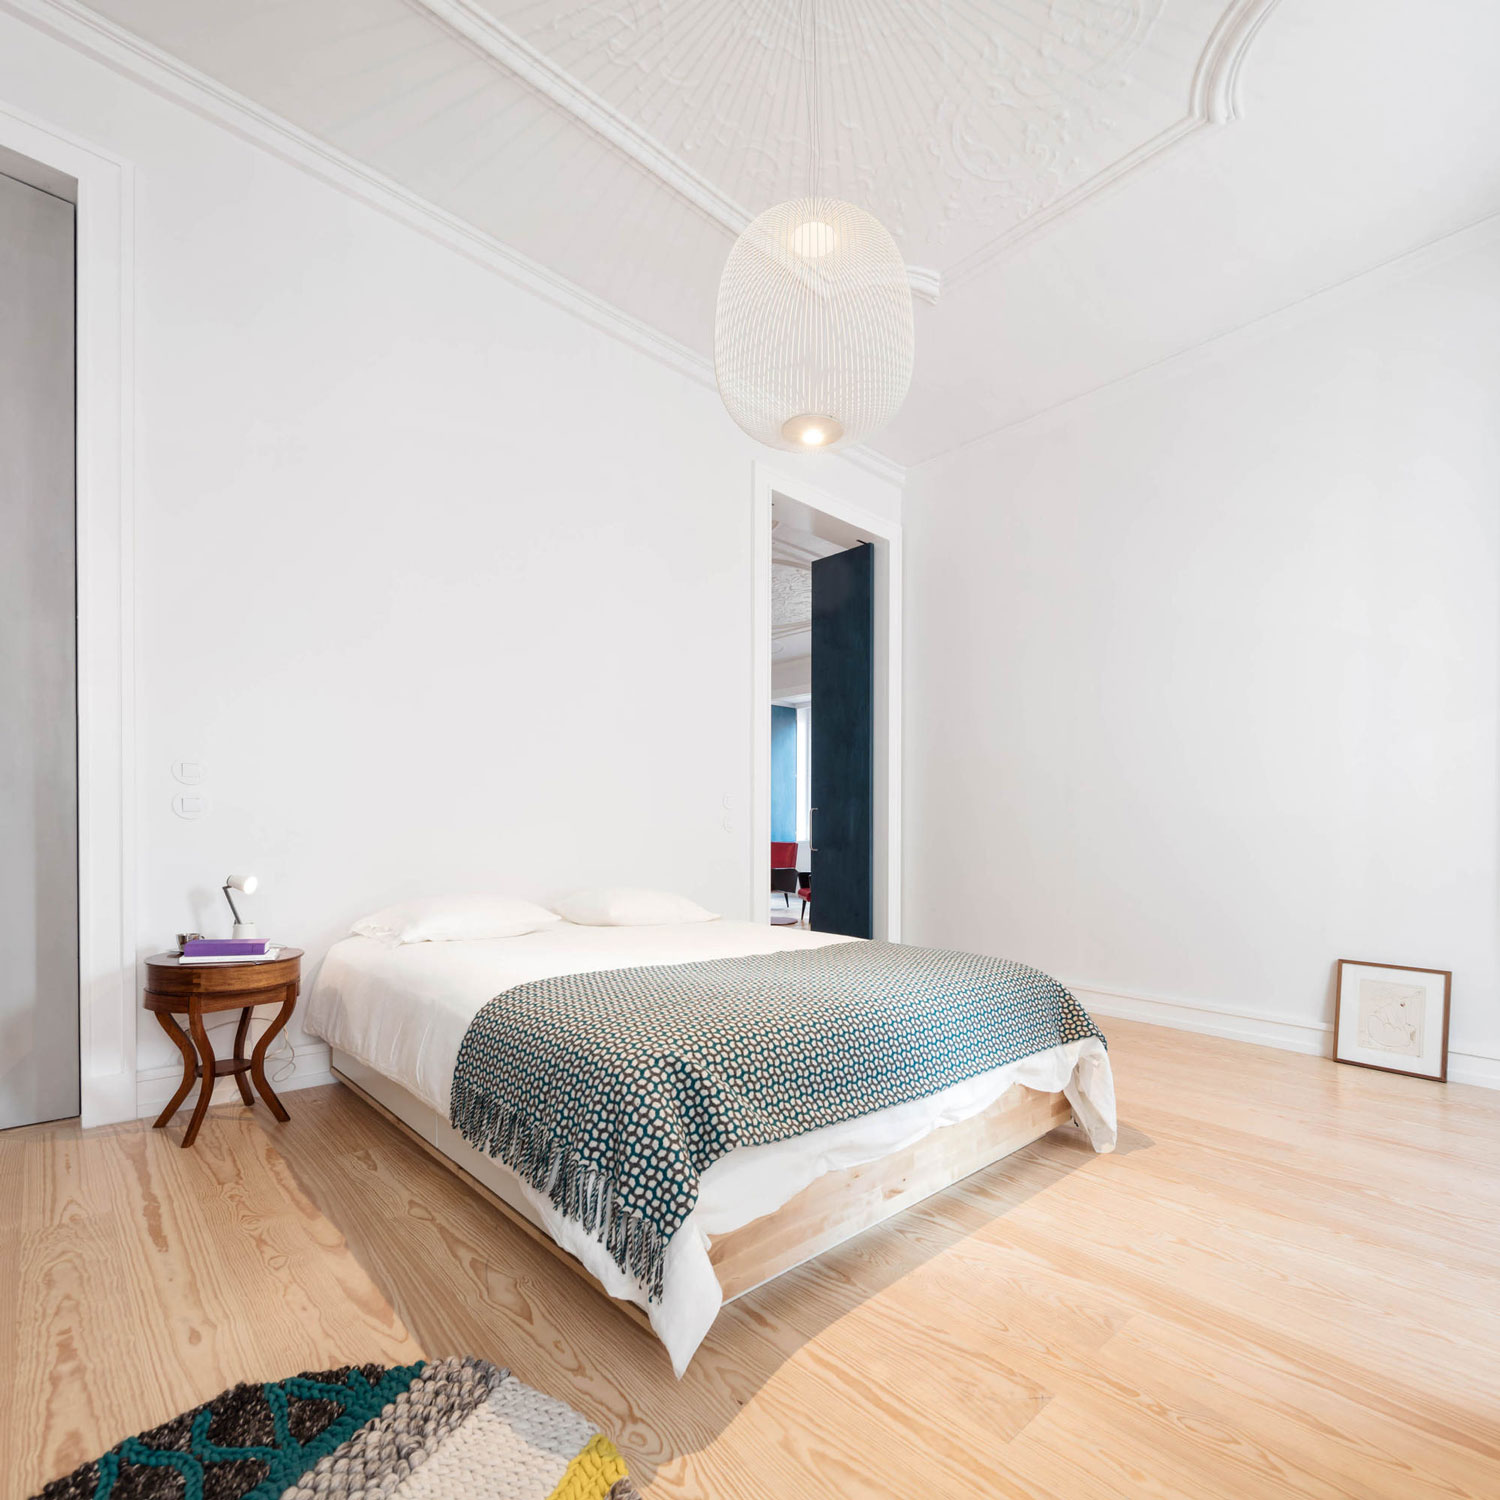 Heritage Trace Apartments: Chiado Apartment In Lisbon By Fala Atelier